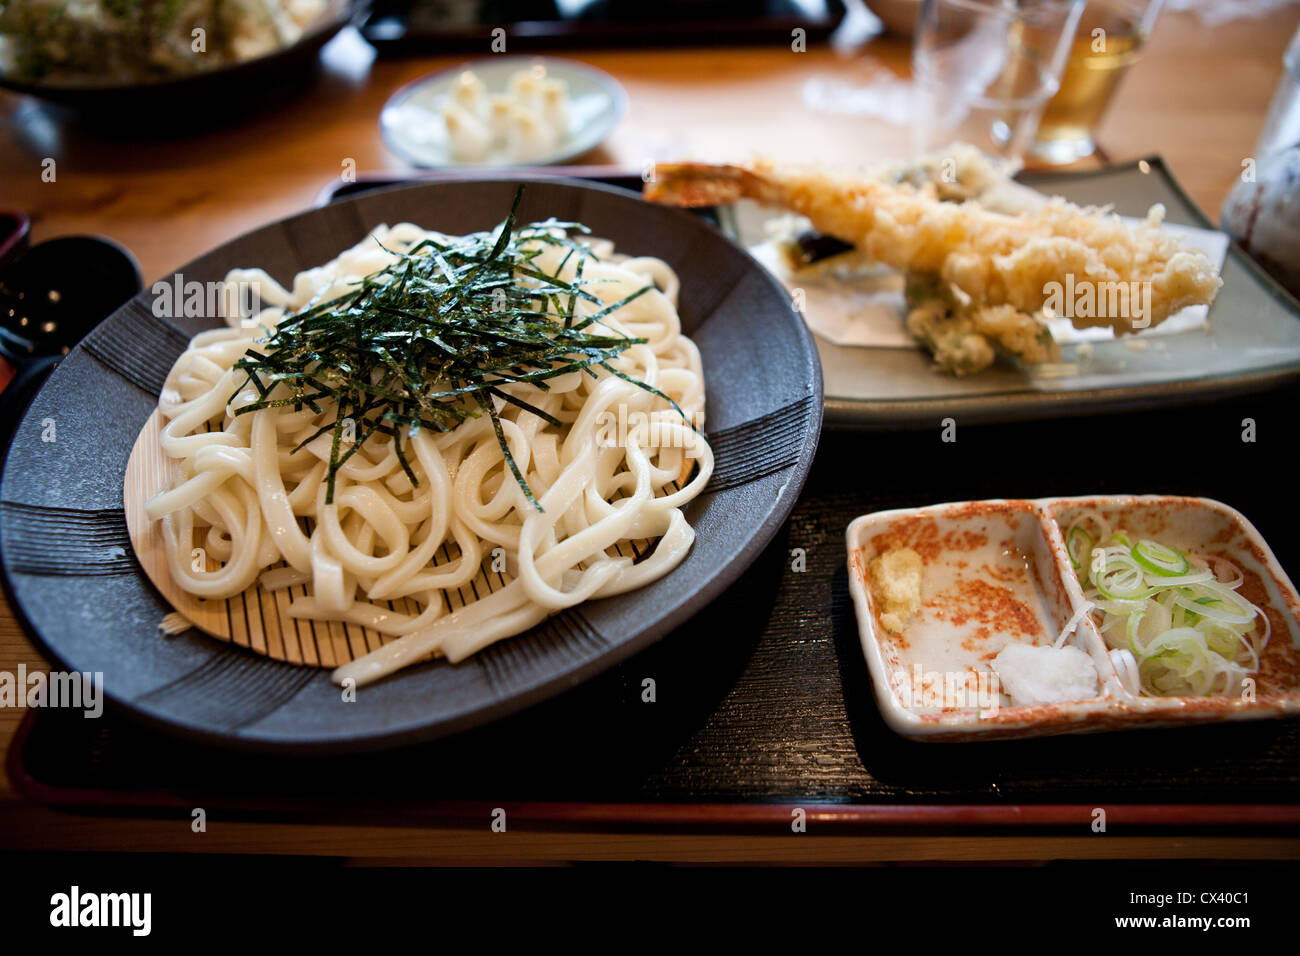 Traditional cold udon noodles served with shrimp tempura on the side. Stock Photo